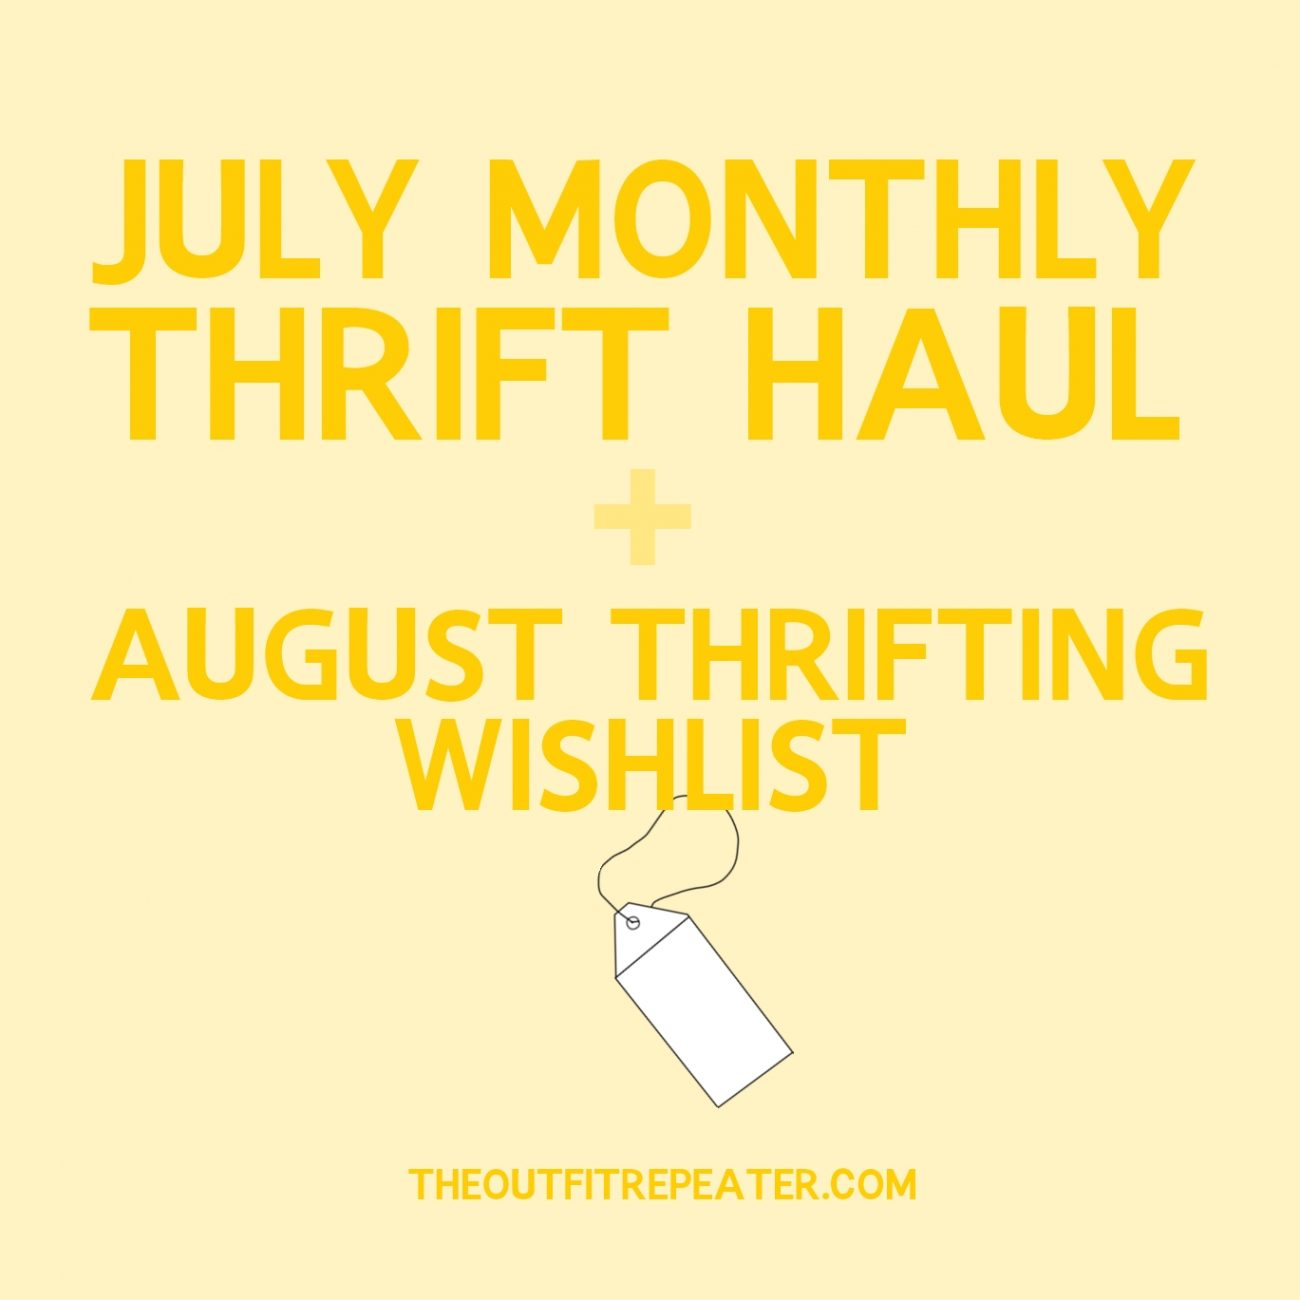 July Thrift Haul Video + August Thrifting Wishlist